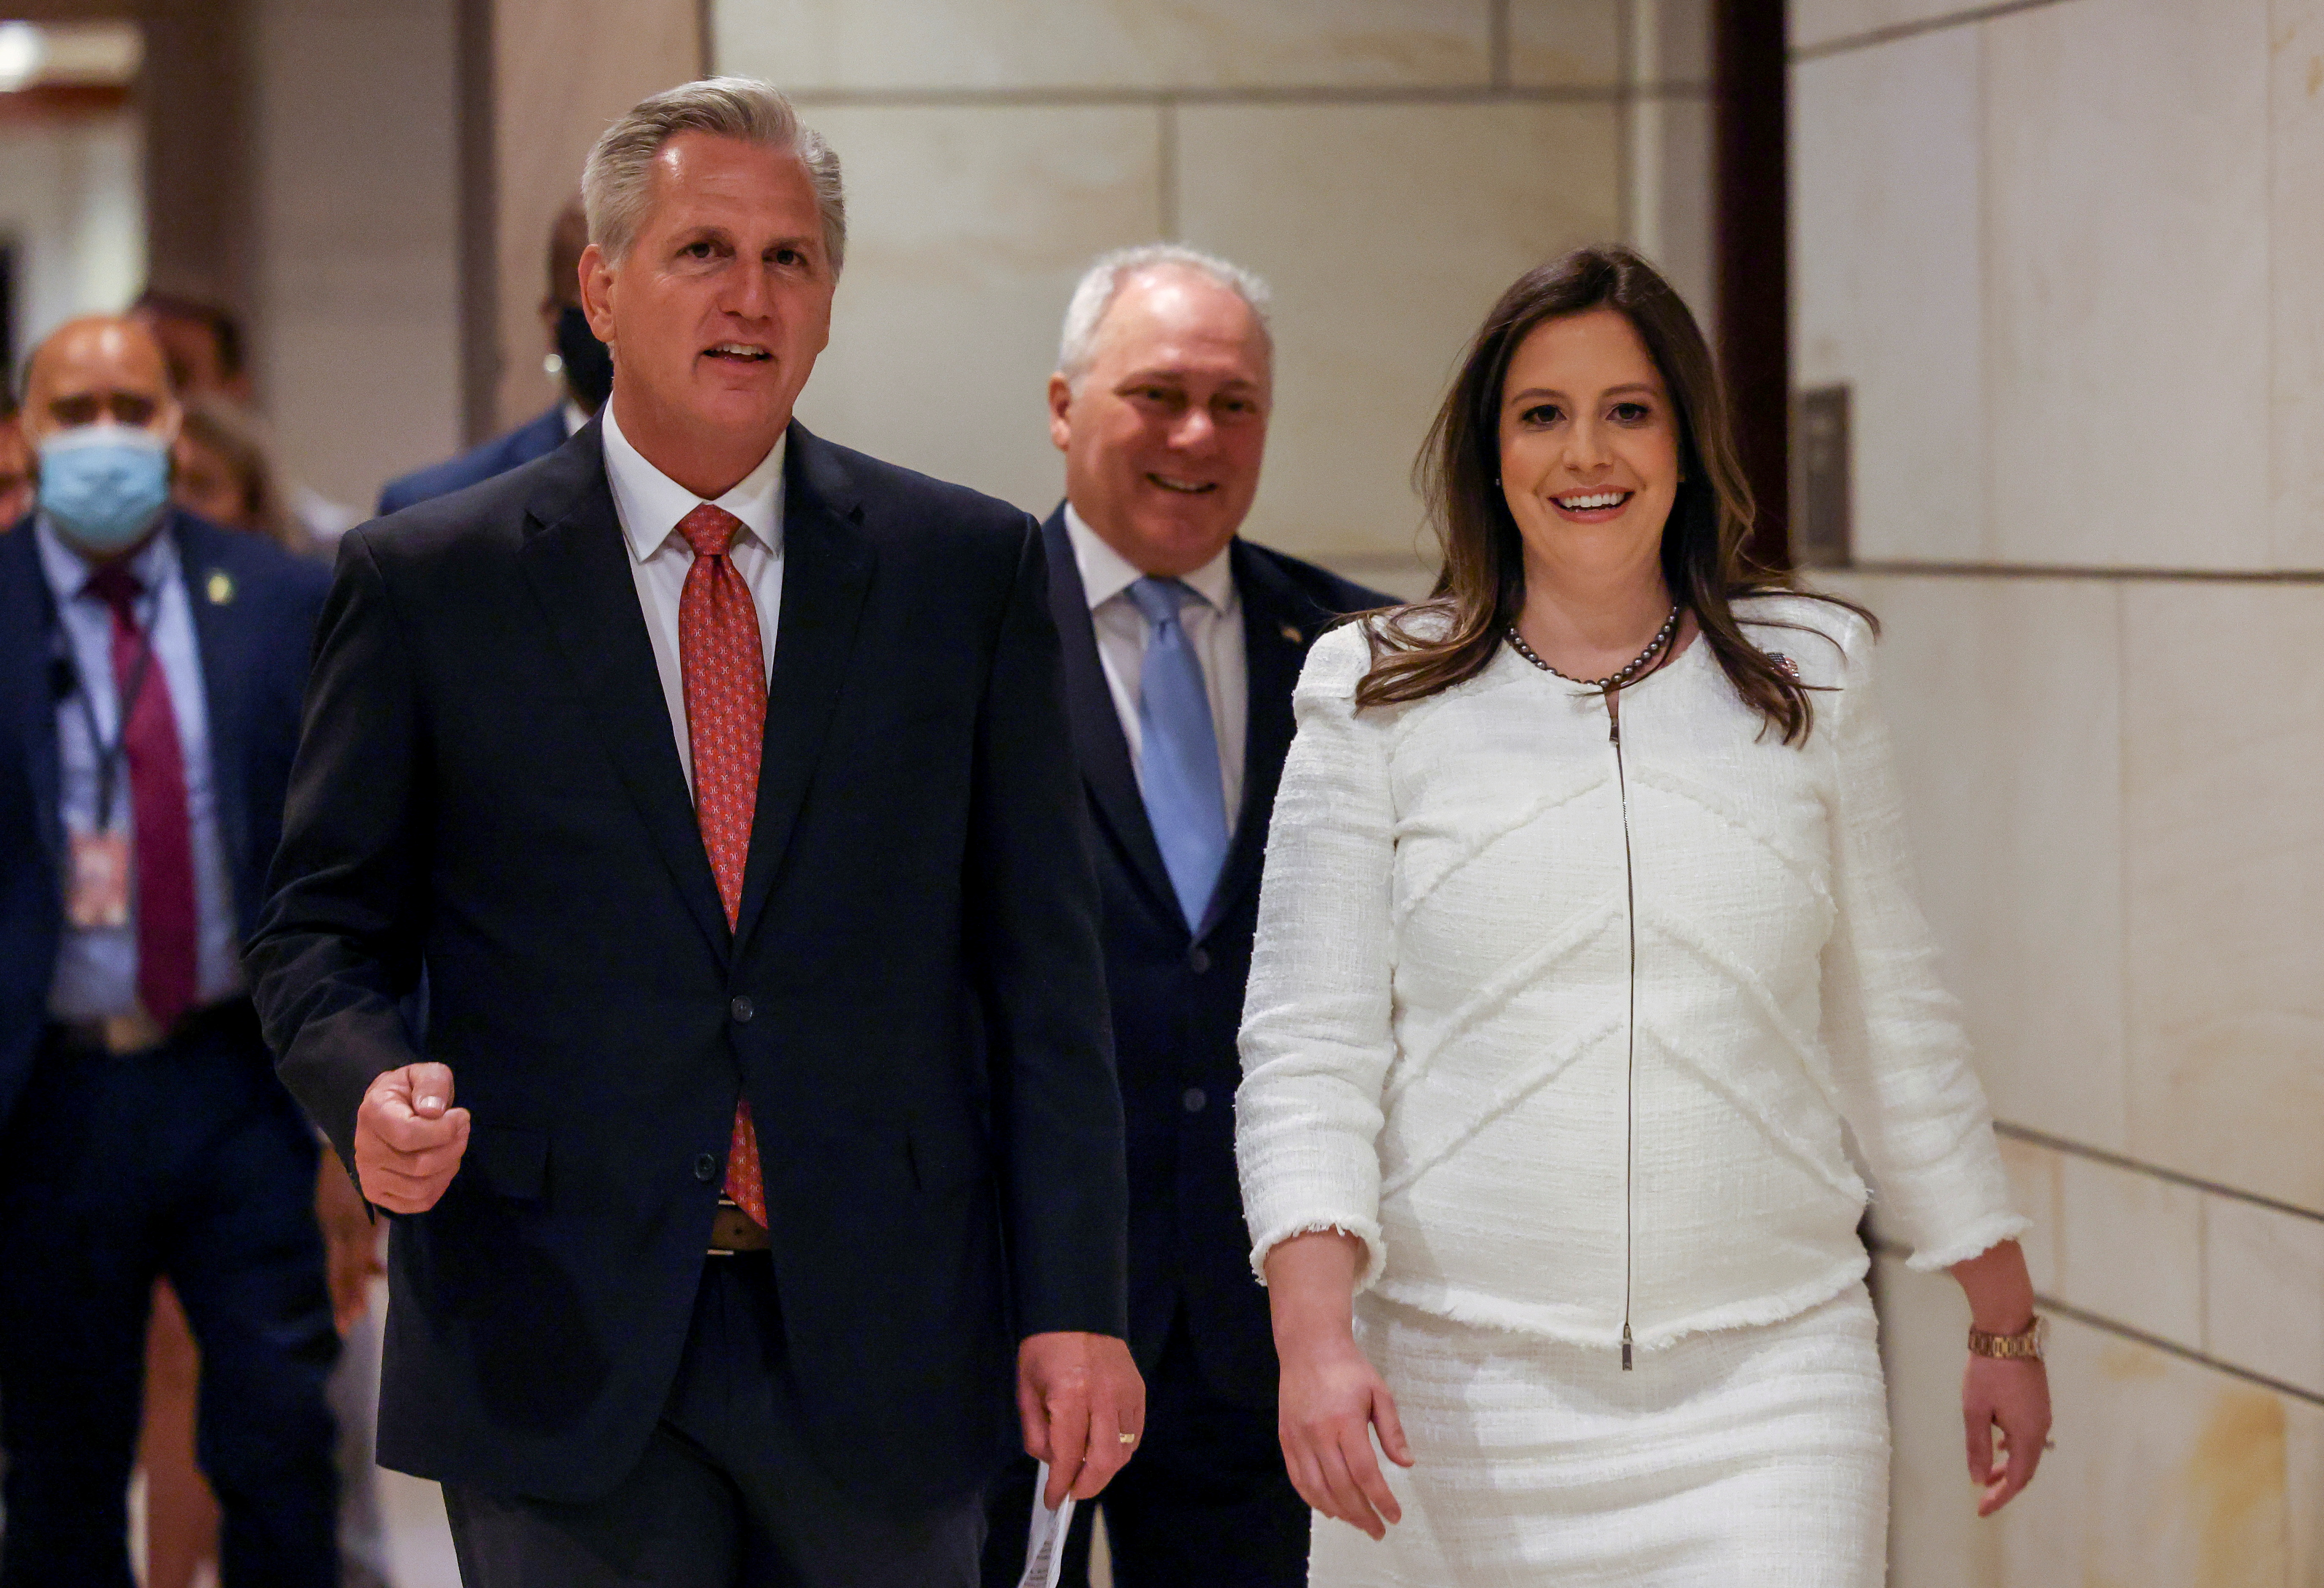 U.S. House Minority Leader Kevin McCarthy (R-CA) walks with U.S. Representative Elise Stefanik (R-NY) after the Republican caucus meeting to speak to the media, in Washington, U.S., May 14, 2021. REUTERS/Evelyn Hockstein